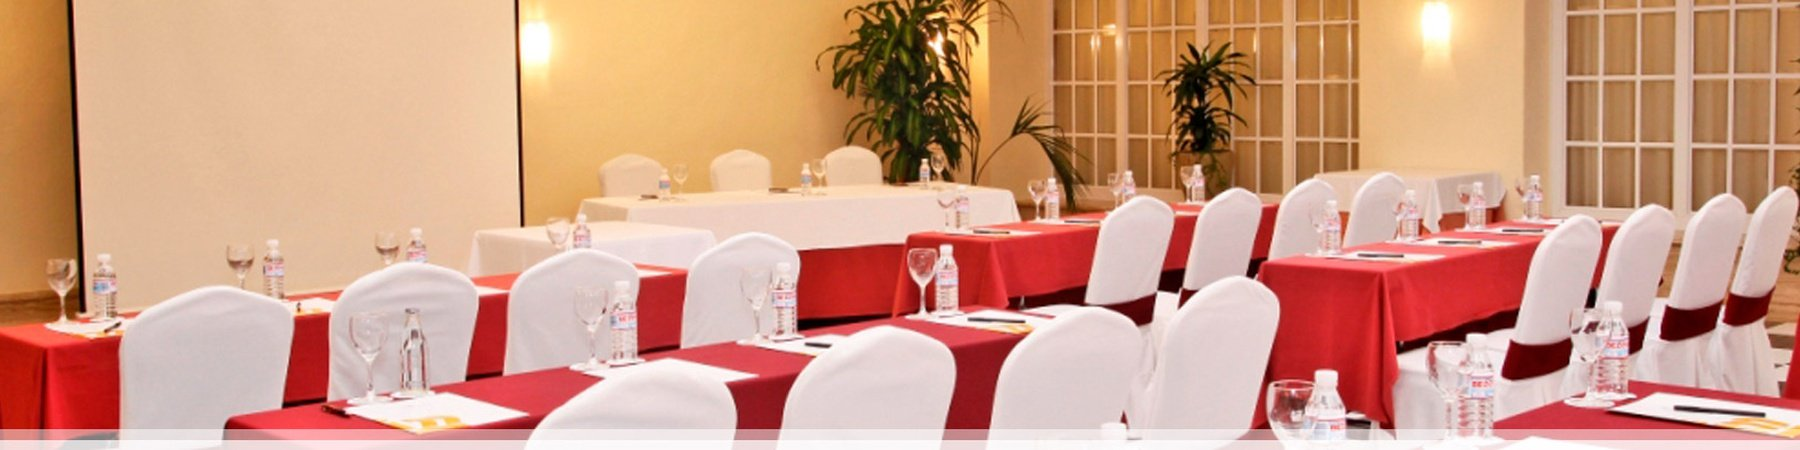 Meeting Rooms - Sercotel Carlos III Hotel